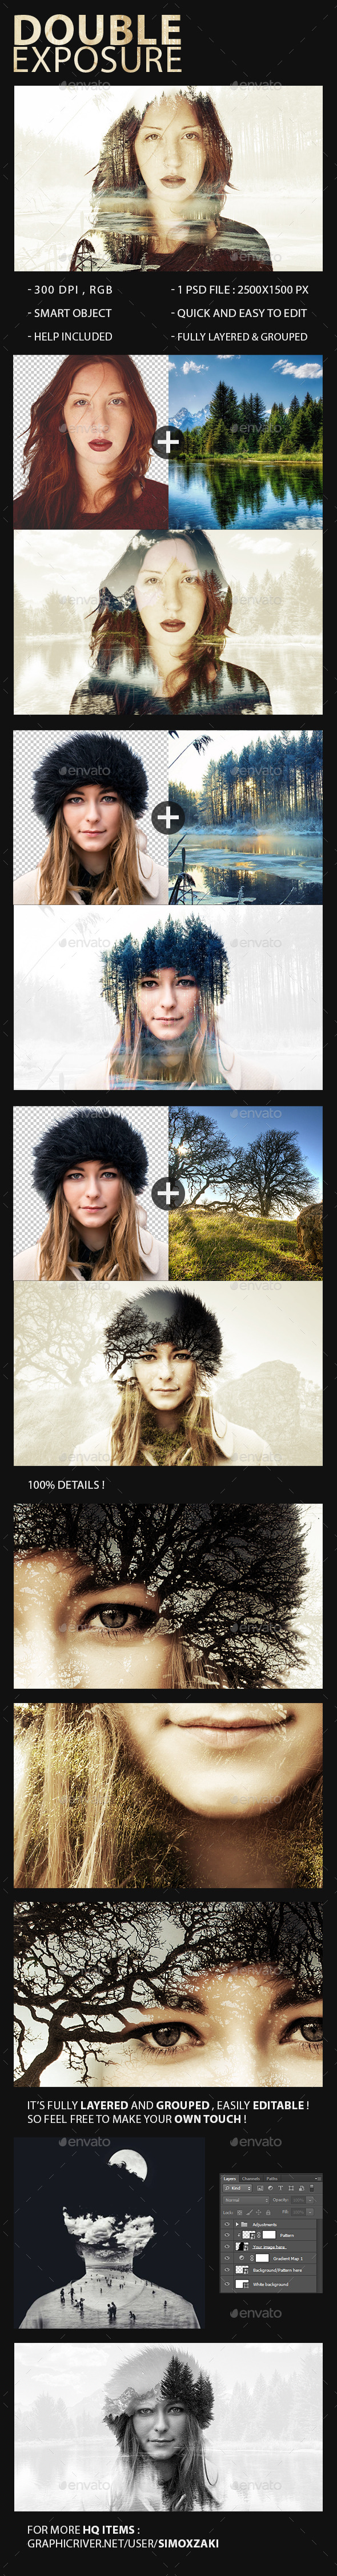 GraphicRiver Double Exposure Maker 11097407